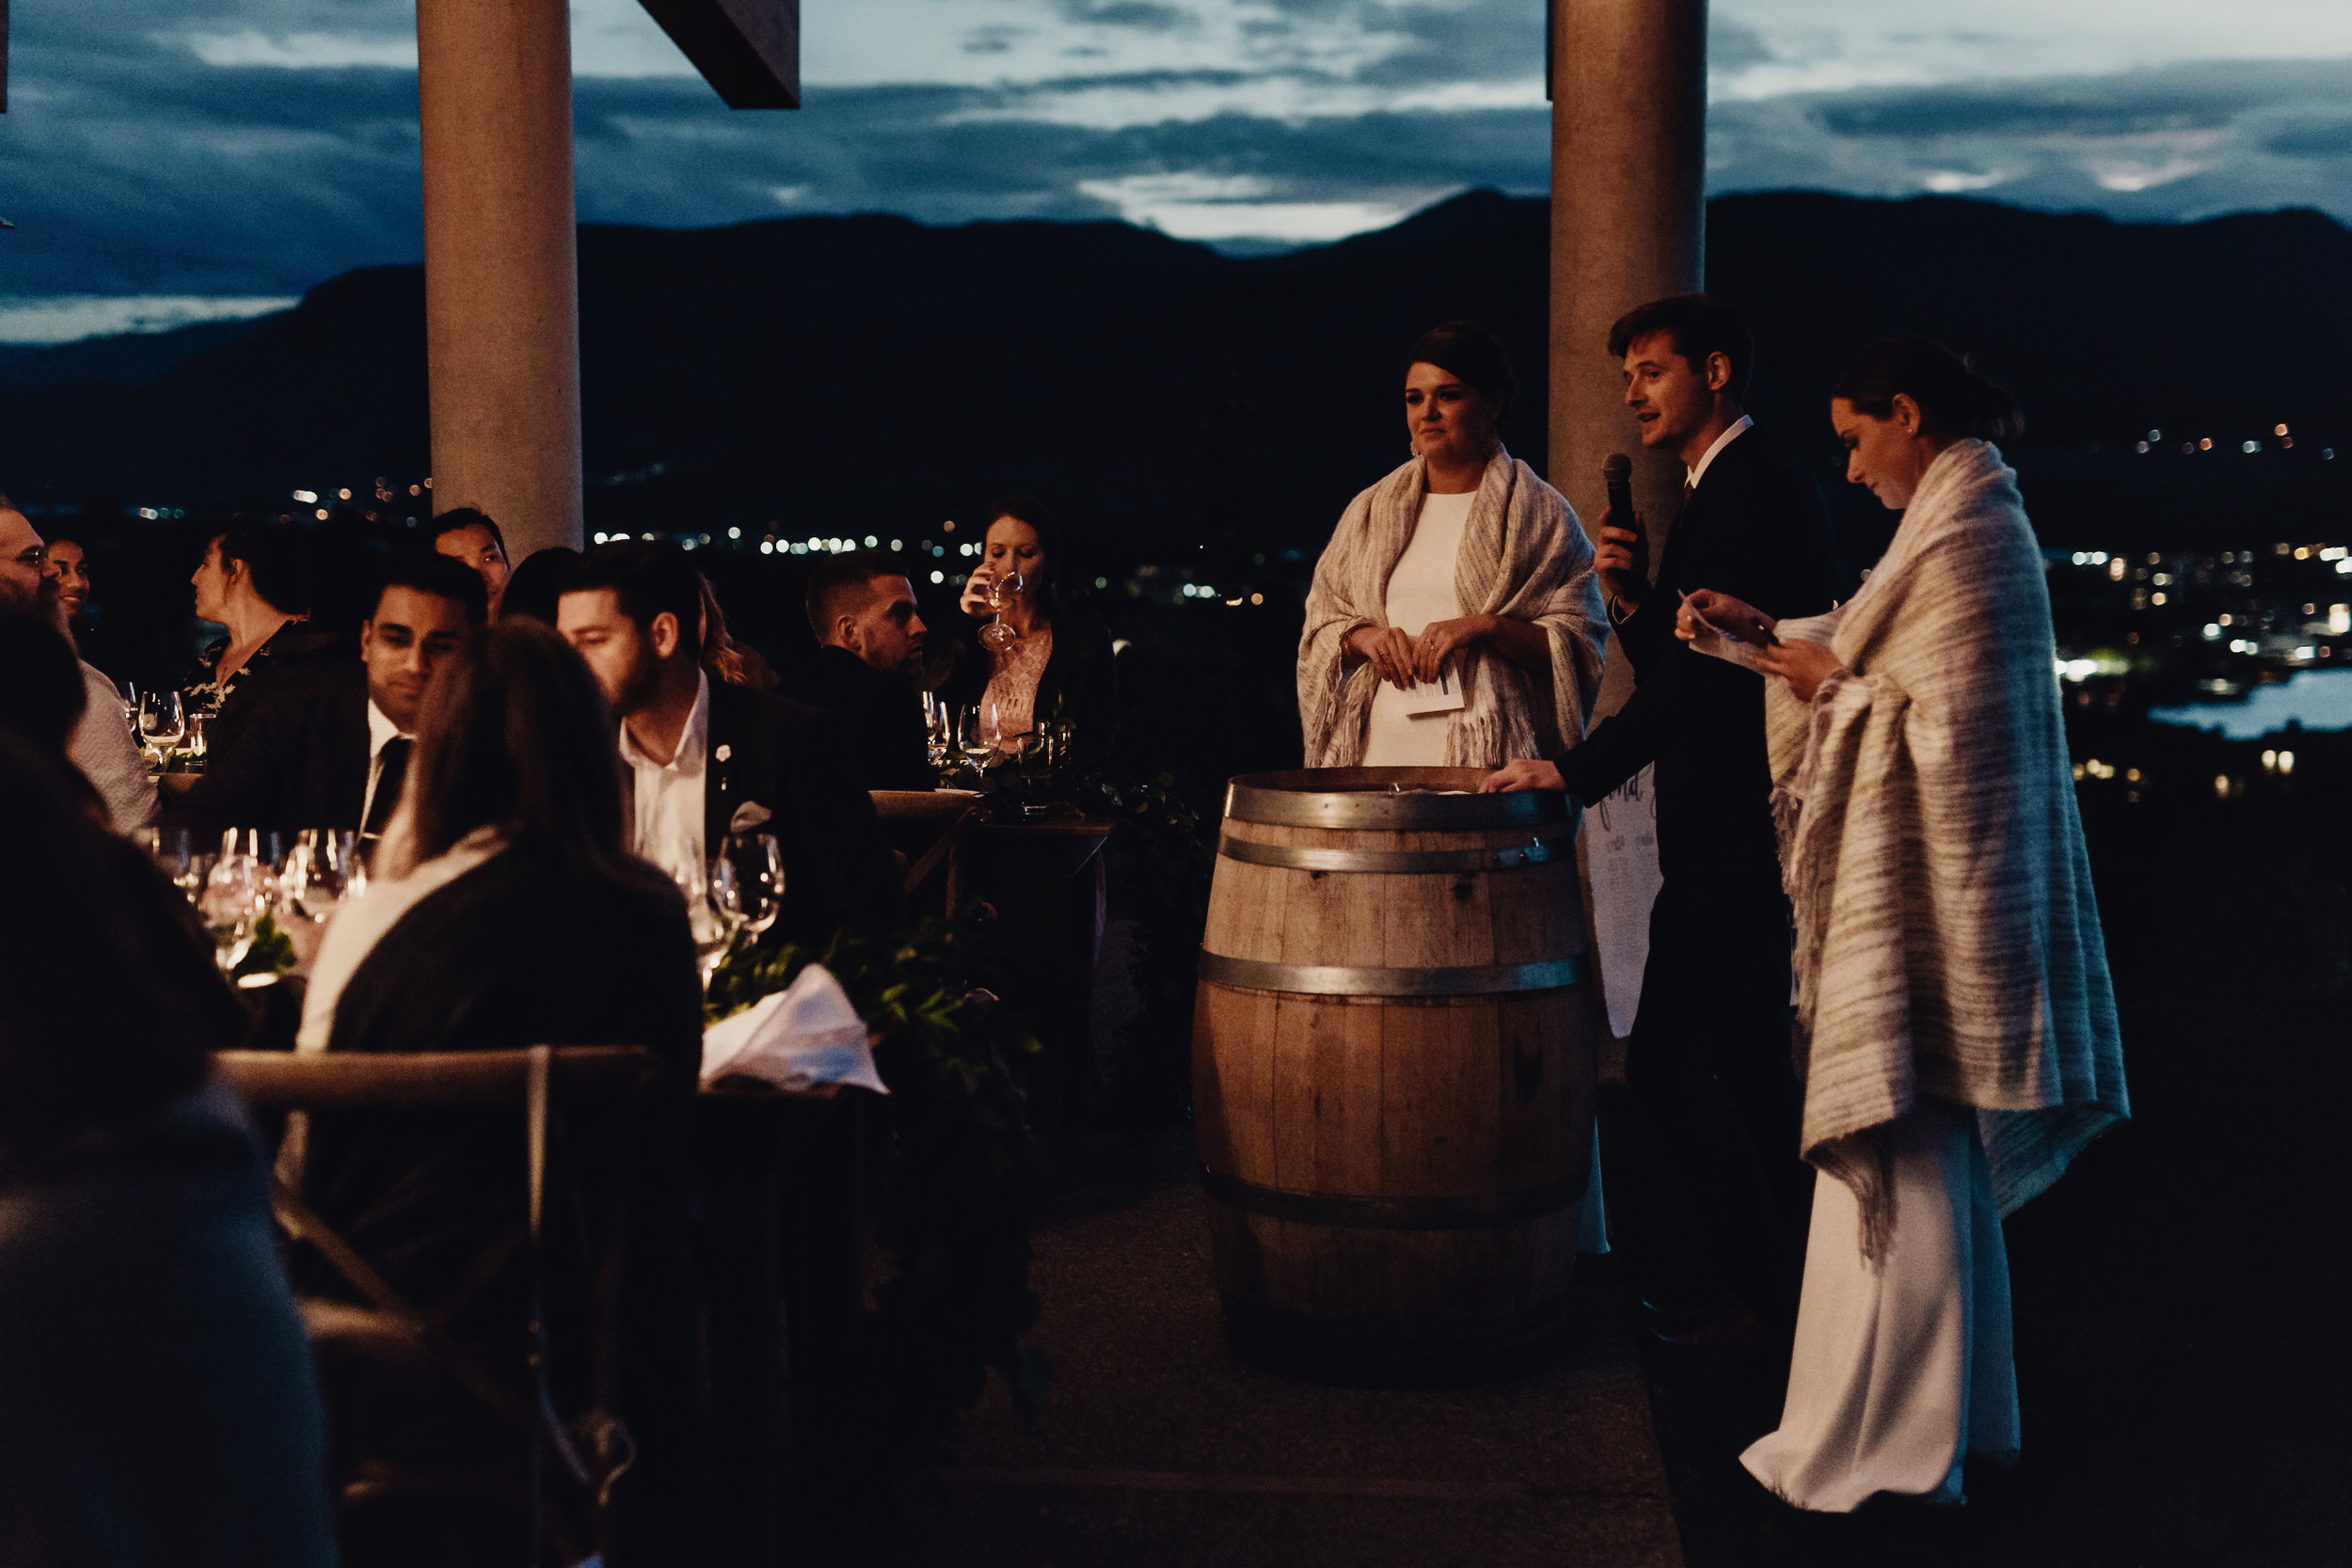 Poplar-grove-wedding-photos-okanagan0151.JPG